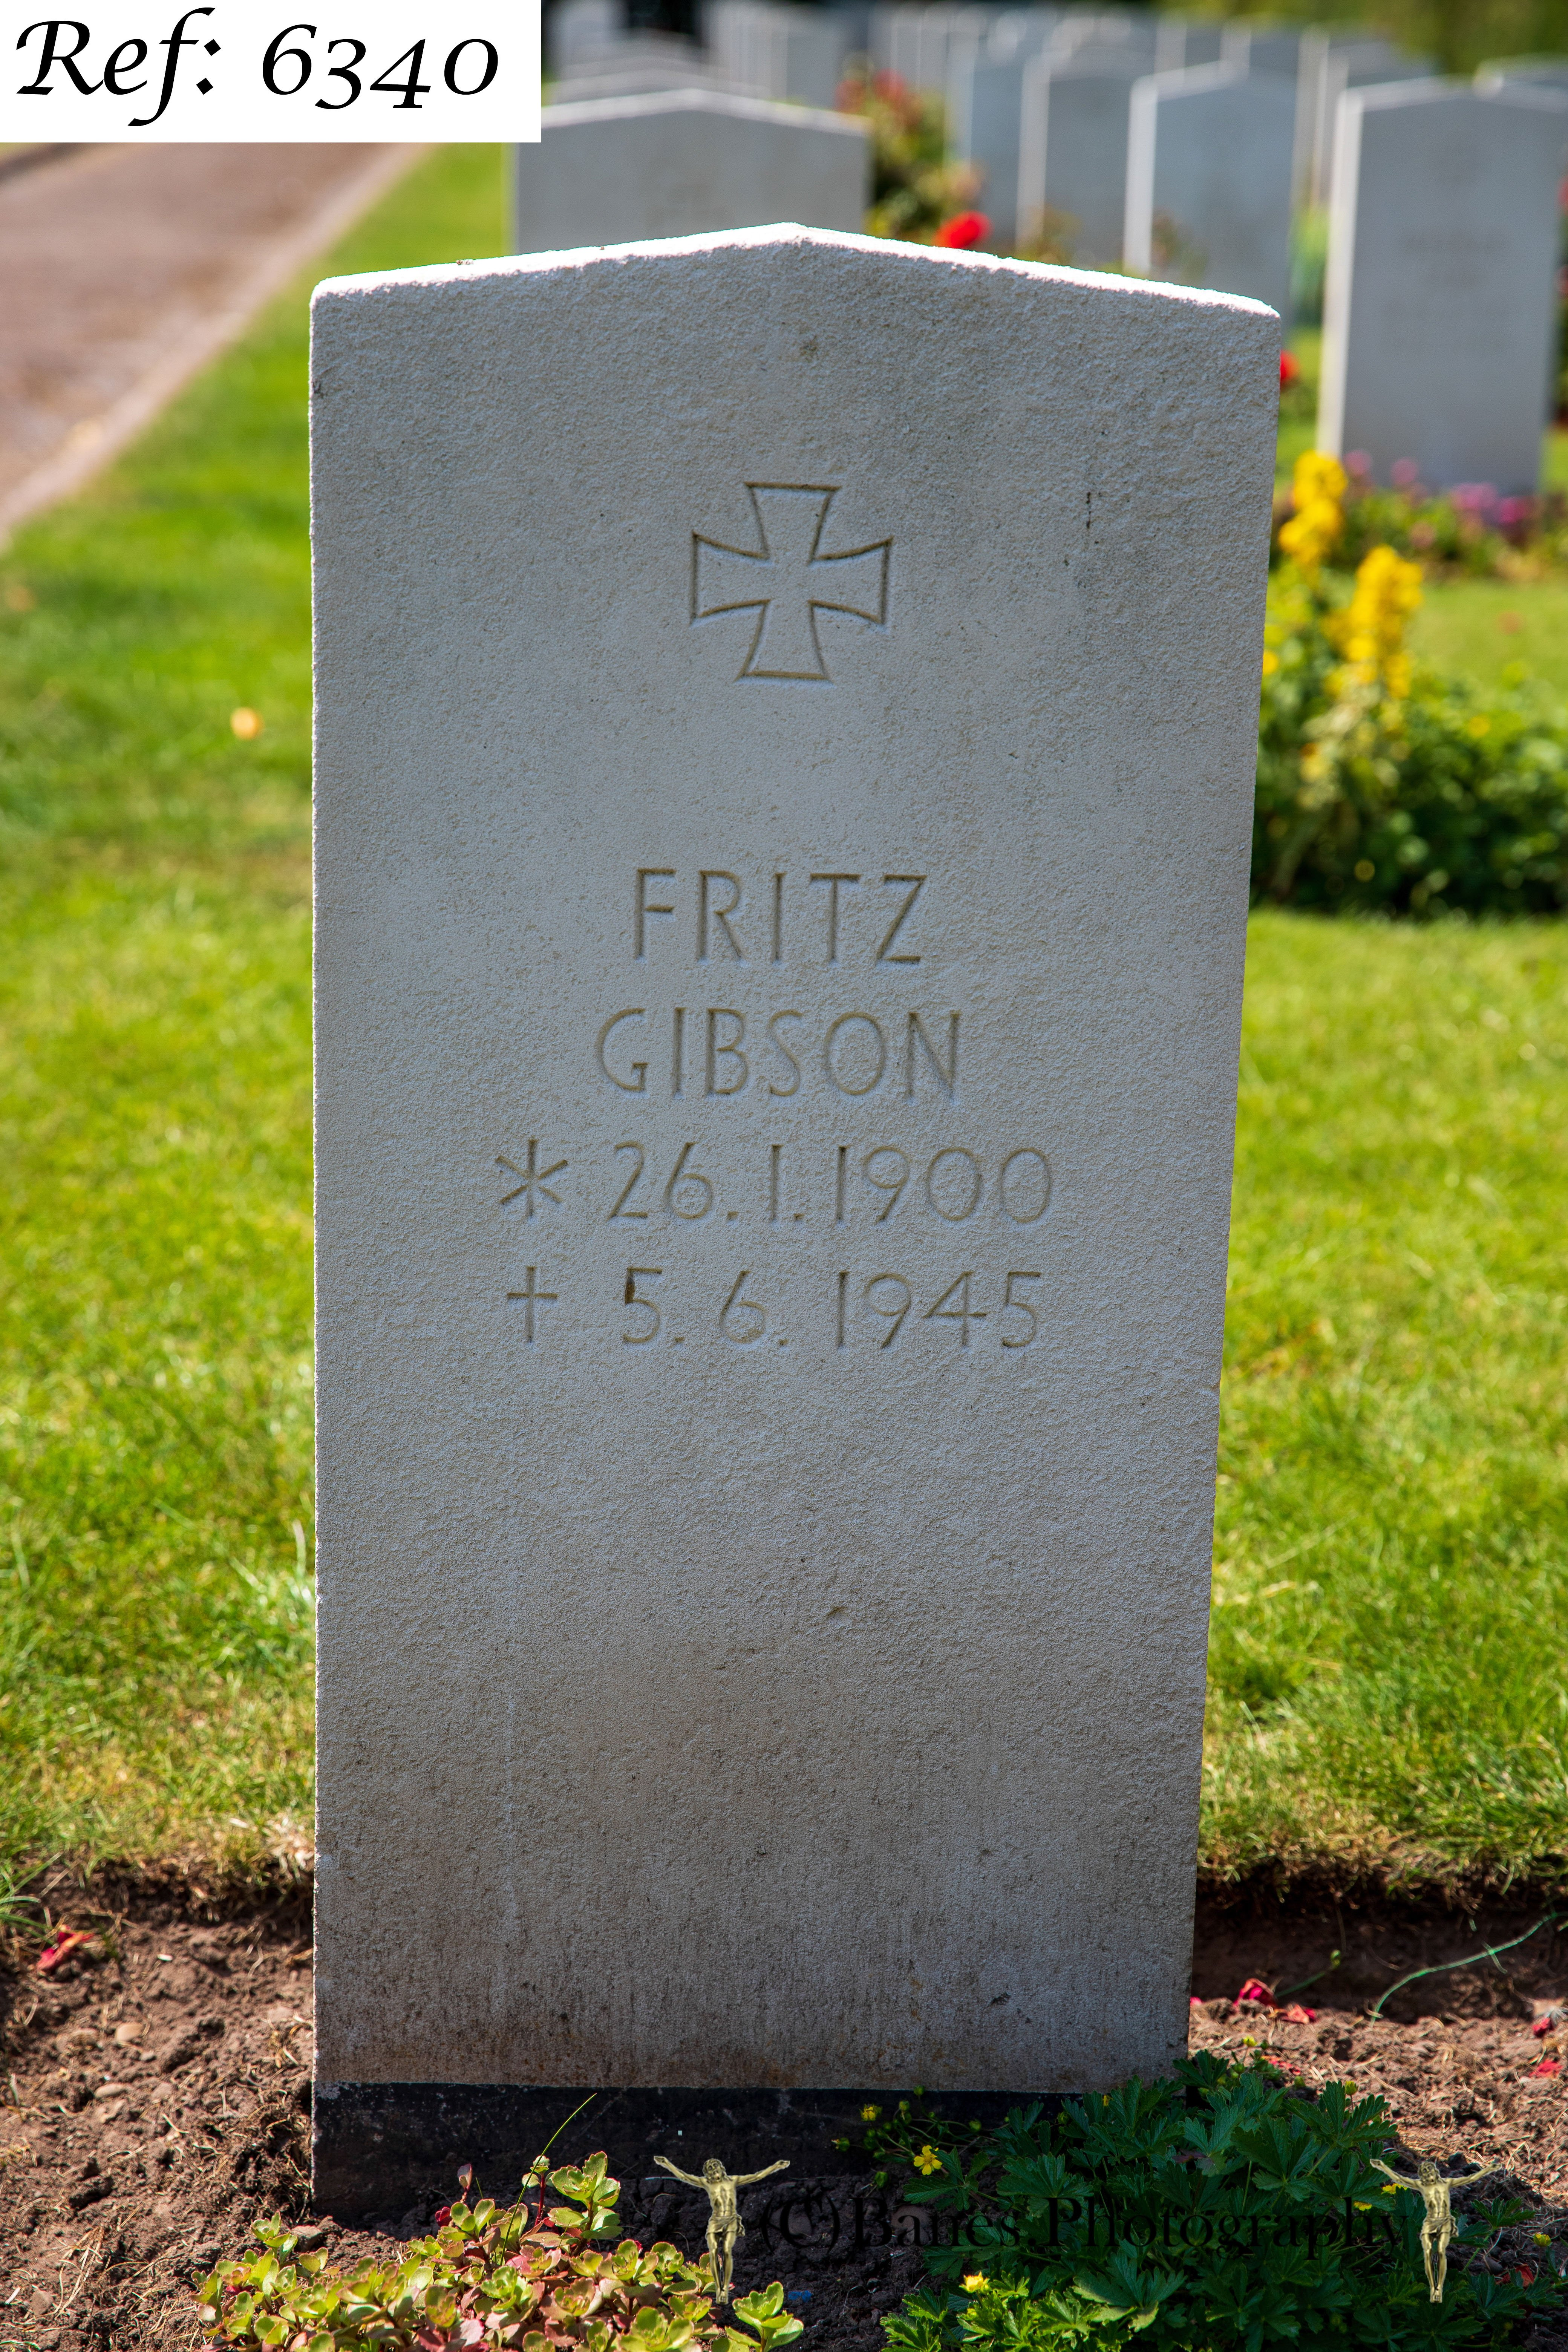 Gibson, Fritz, Beachley Military Cemetery (Web 2 WM) Ref 6340